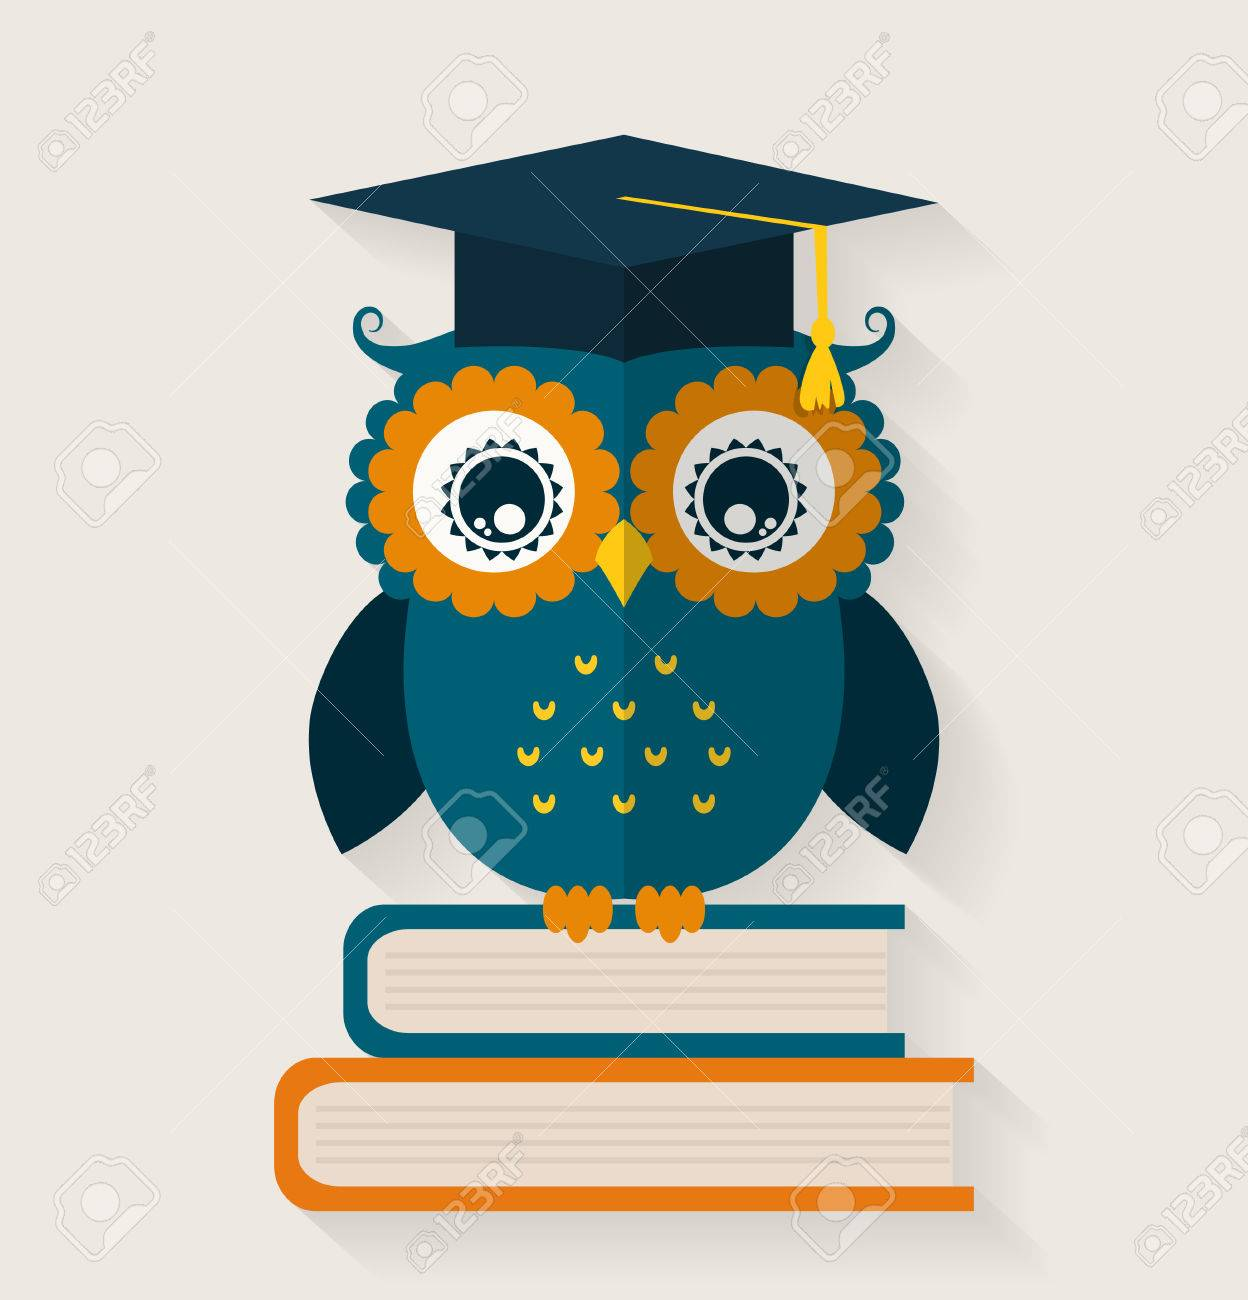 Wise Owl In Graduate Cap Sitting On The Books School And Education